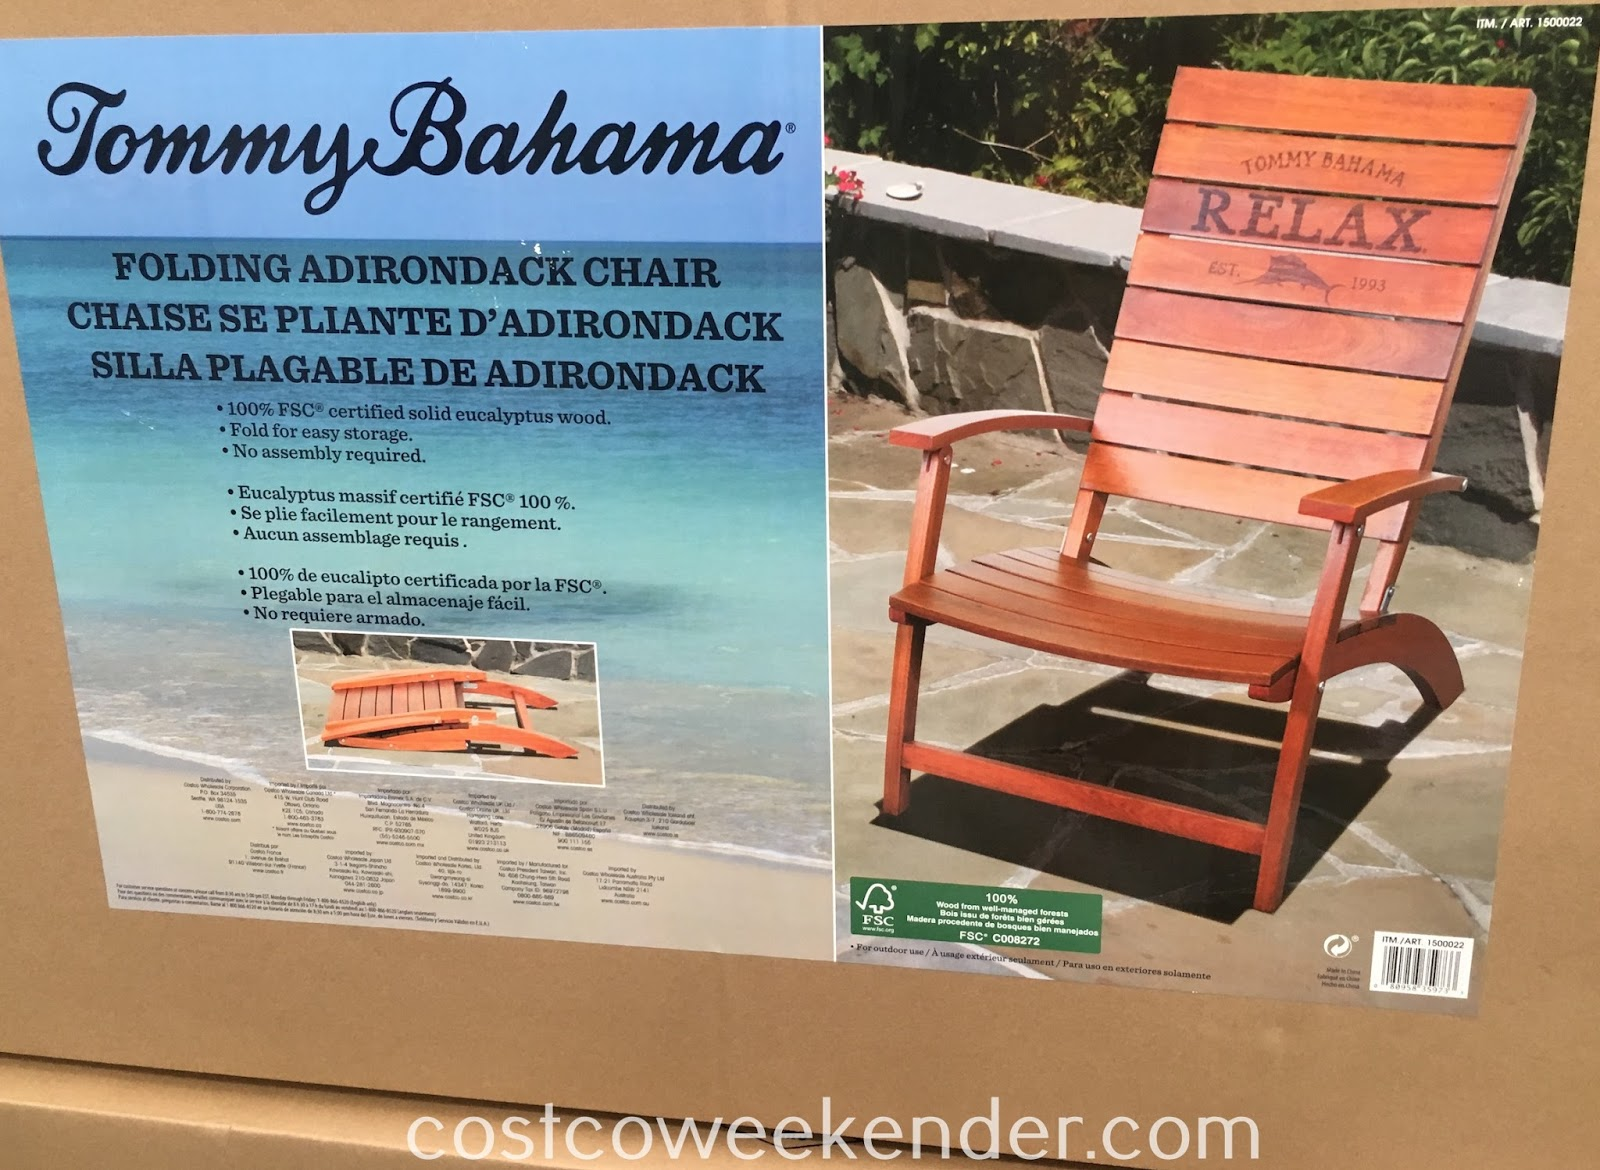 Costco Adirondack Chairs Tommy Bahama Folding Adirondack Chair Costco Weekender